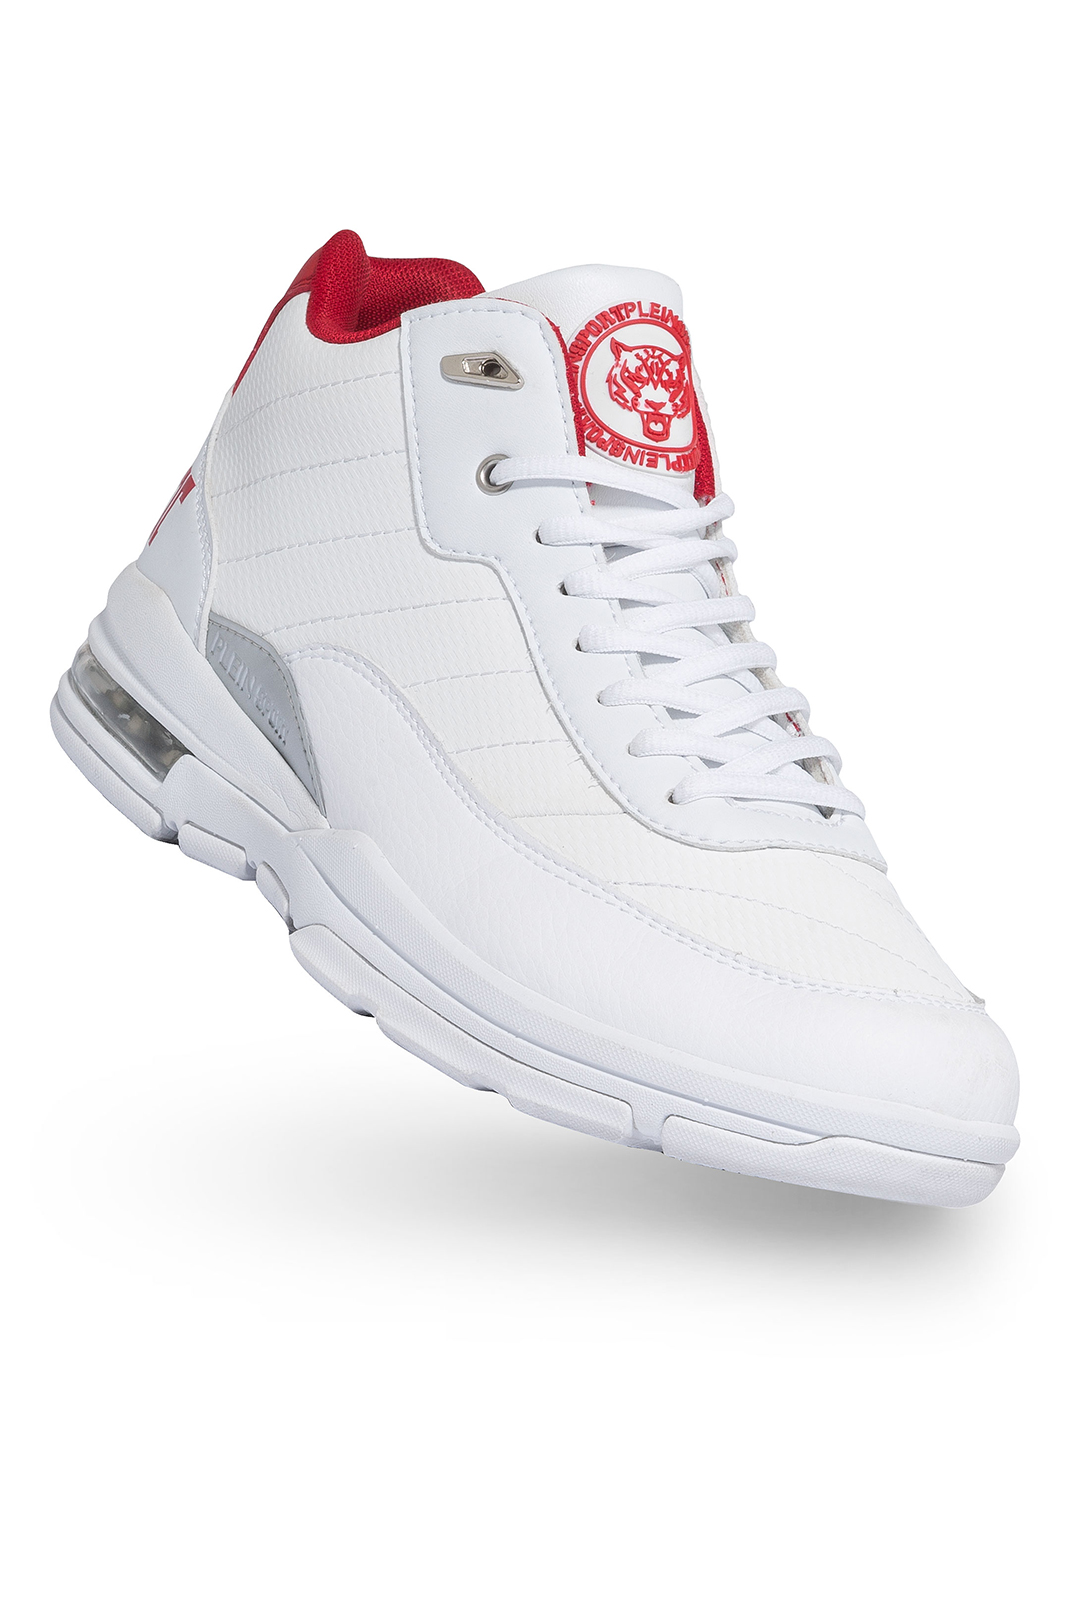 Baskets / Sport  Plein Sport P17S MSC0297 WHITE NICKEL